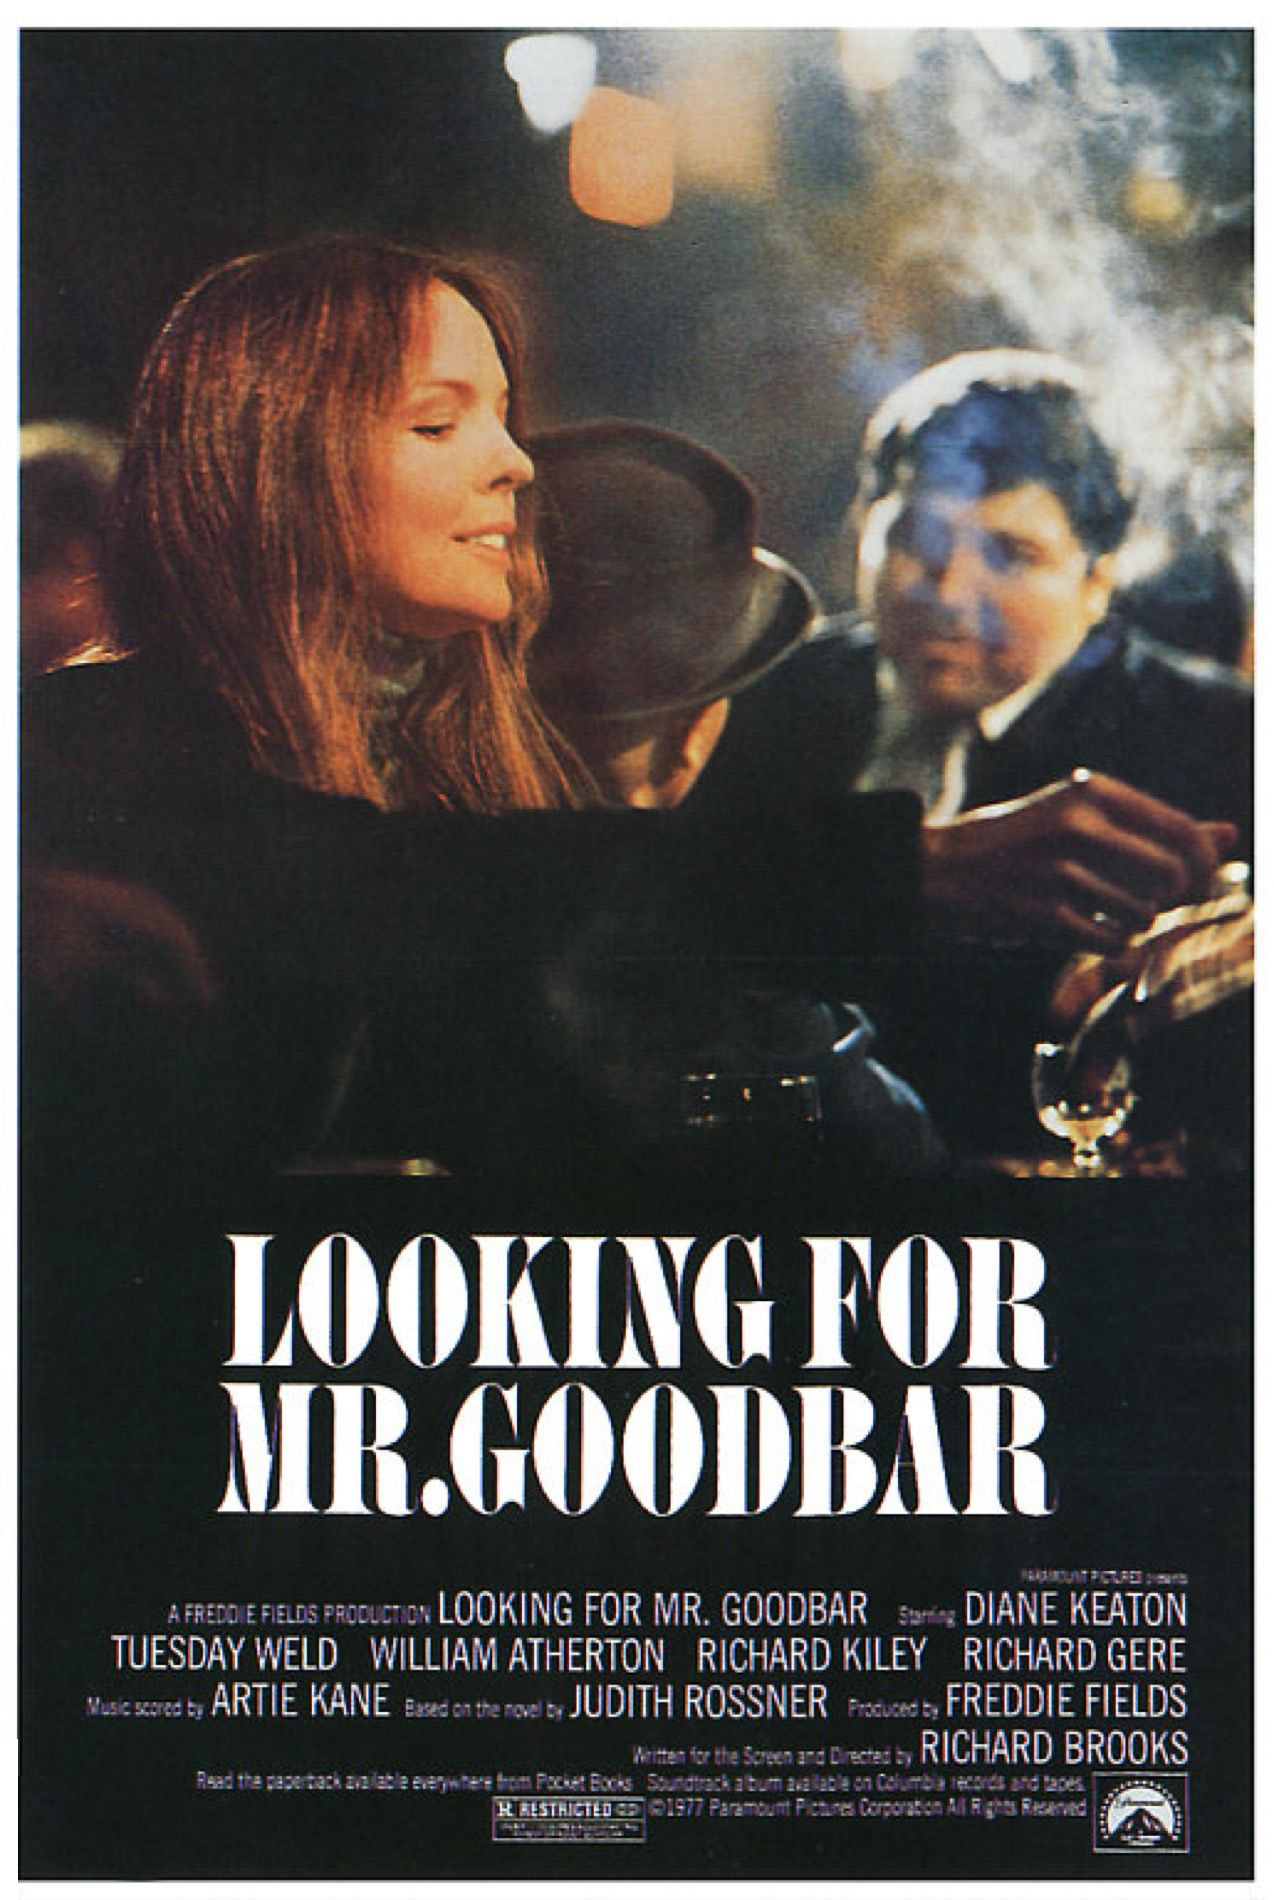 Poster for Looking For Mr. Goodbar